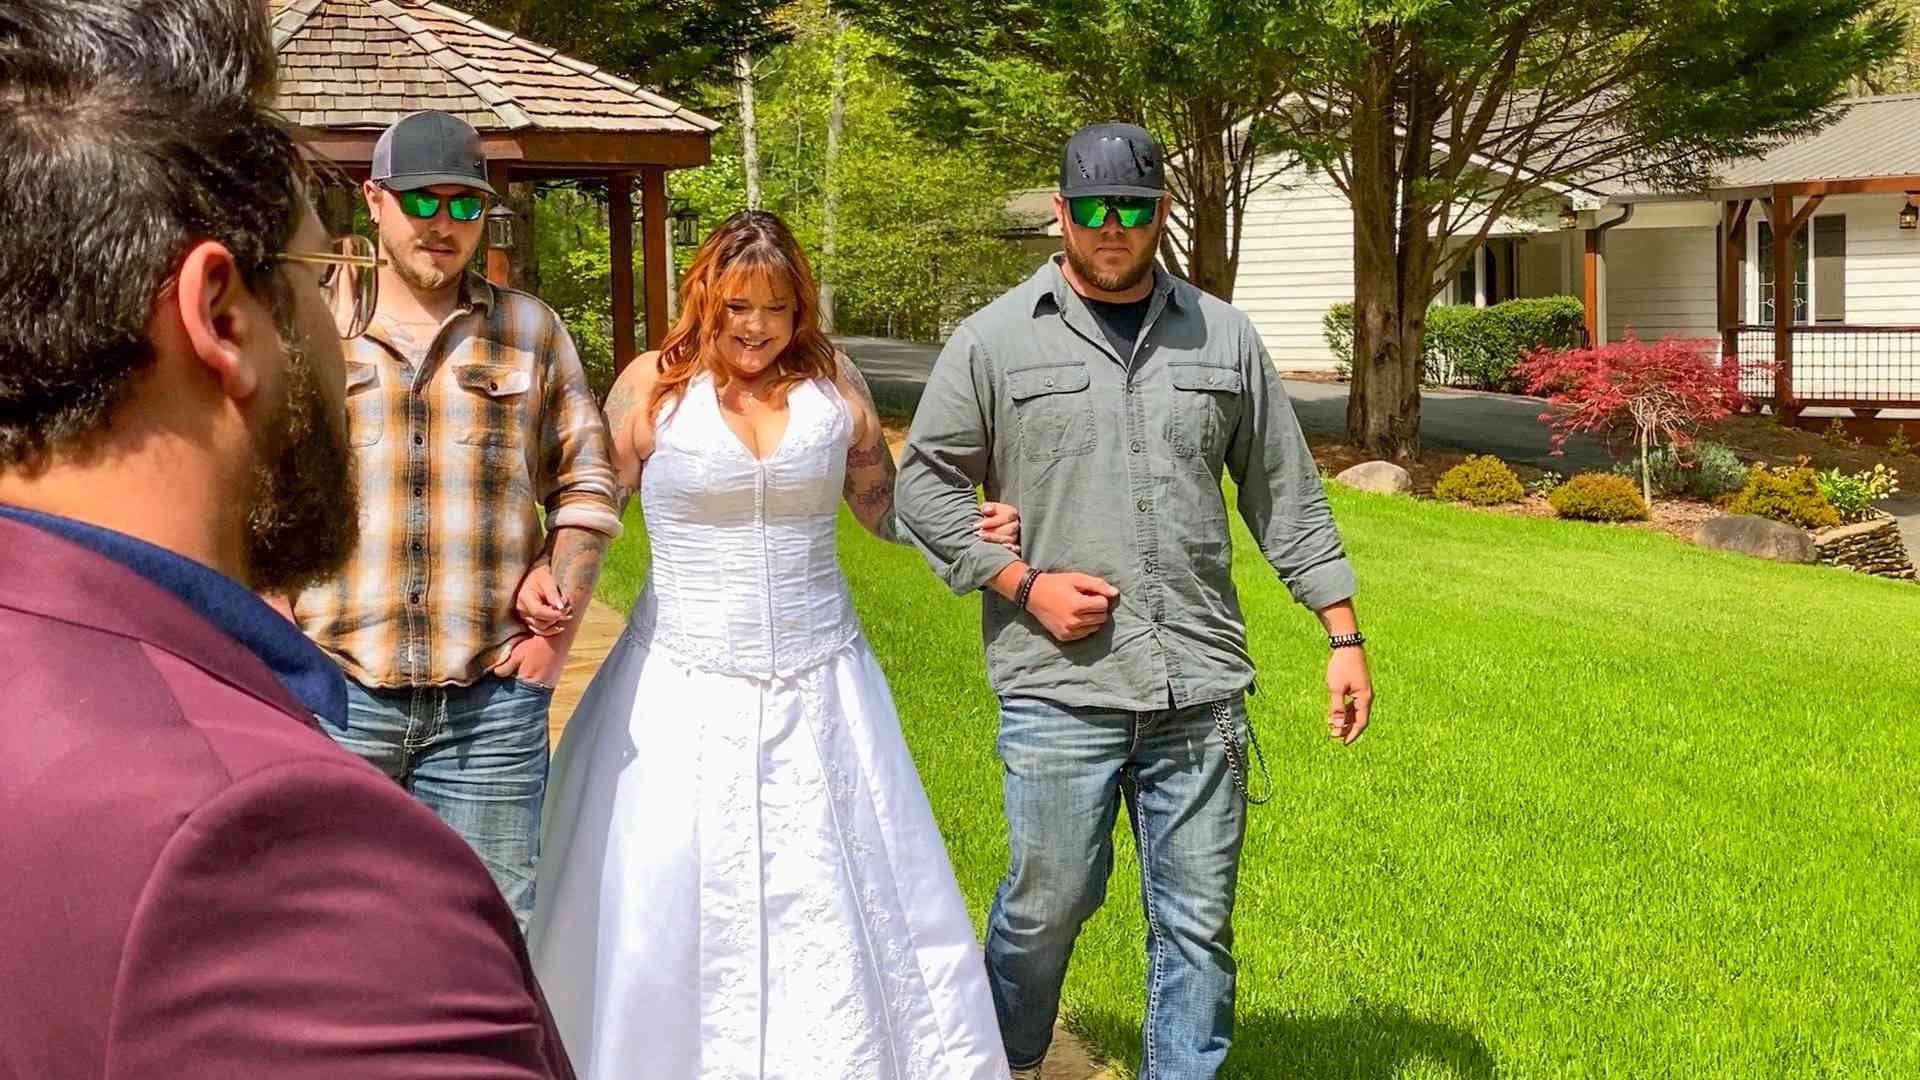 90 Day Fiancé star Rebecca Parrott is escorted down the aisle in a white wedding gown.